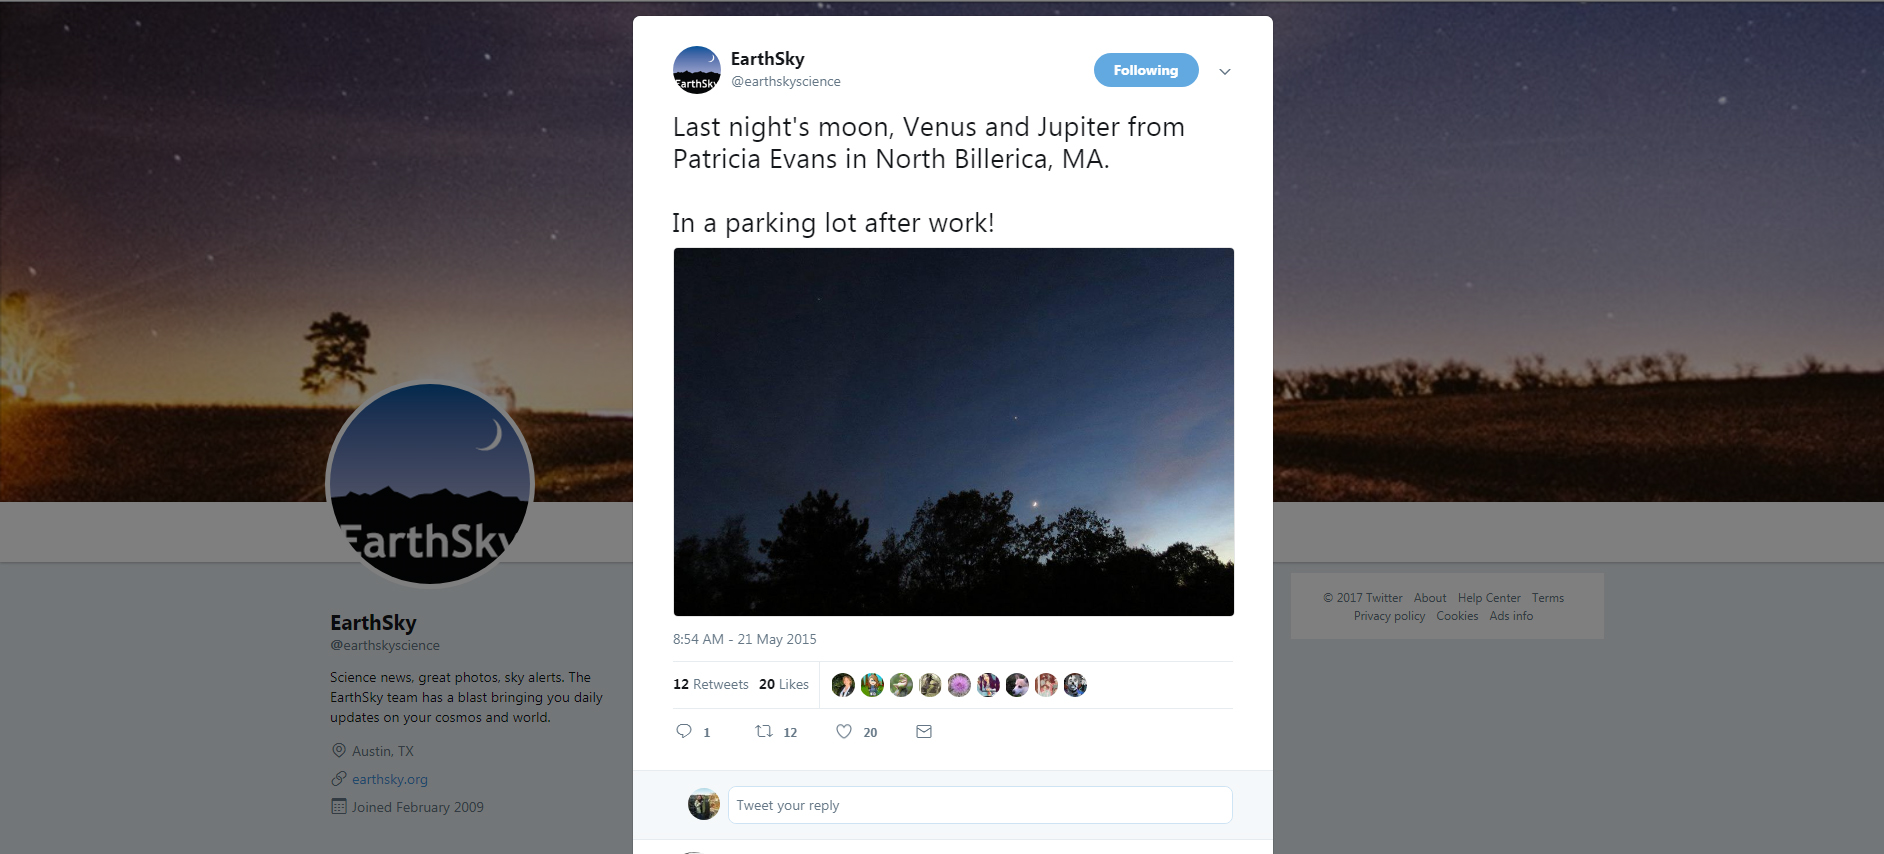 EarthSky ‏ @ earthskyscience     21 May 2015   Last night's moon, Venus and Jupiter from Patricia Evans in North Billerica, MA. In a parking lot after work!  https://twitter.com/earthskyscience/status/601370529682063361